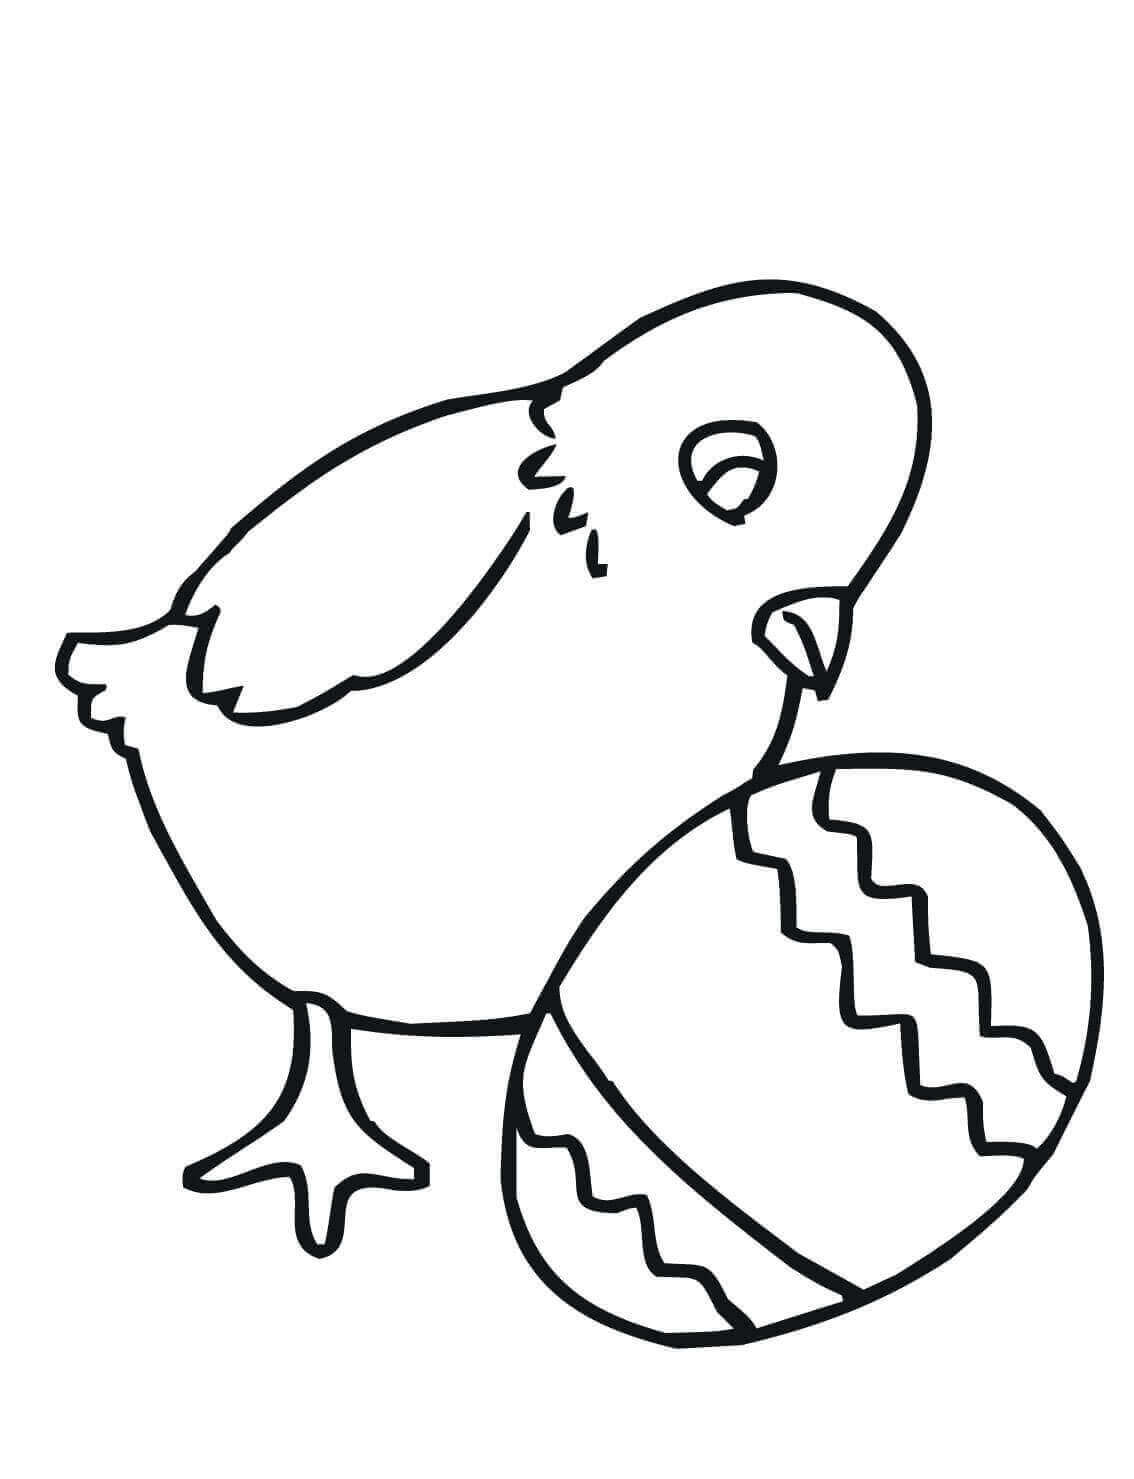 Easy Easter Chick Coloring Page